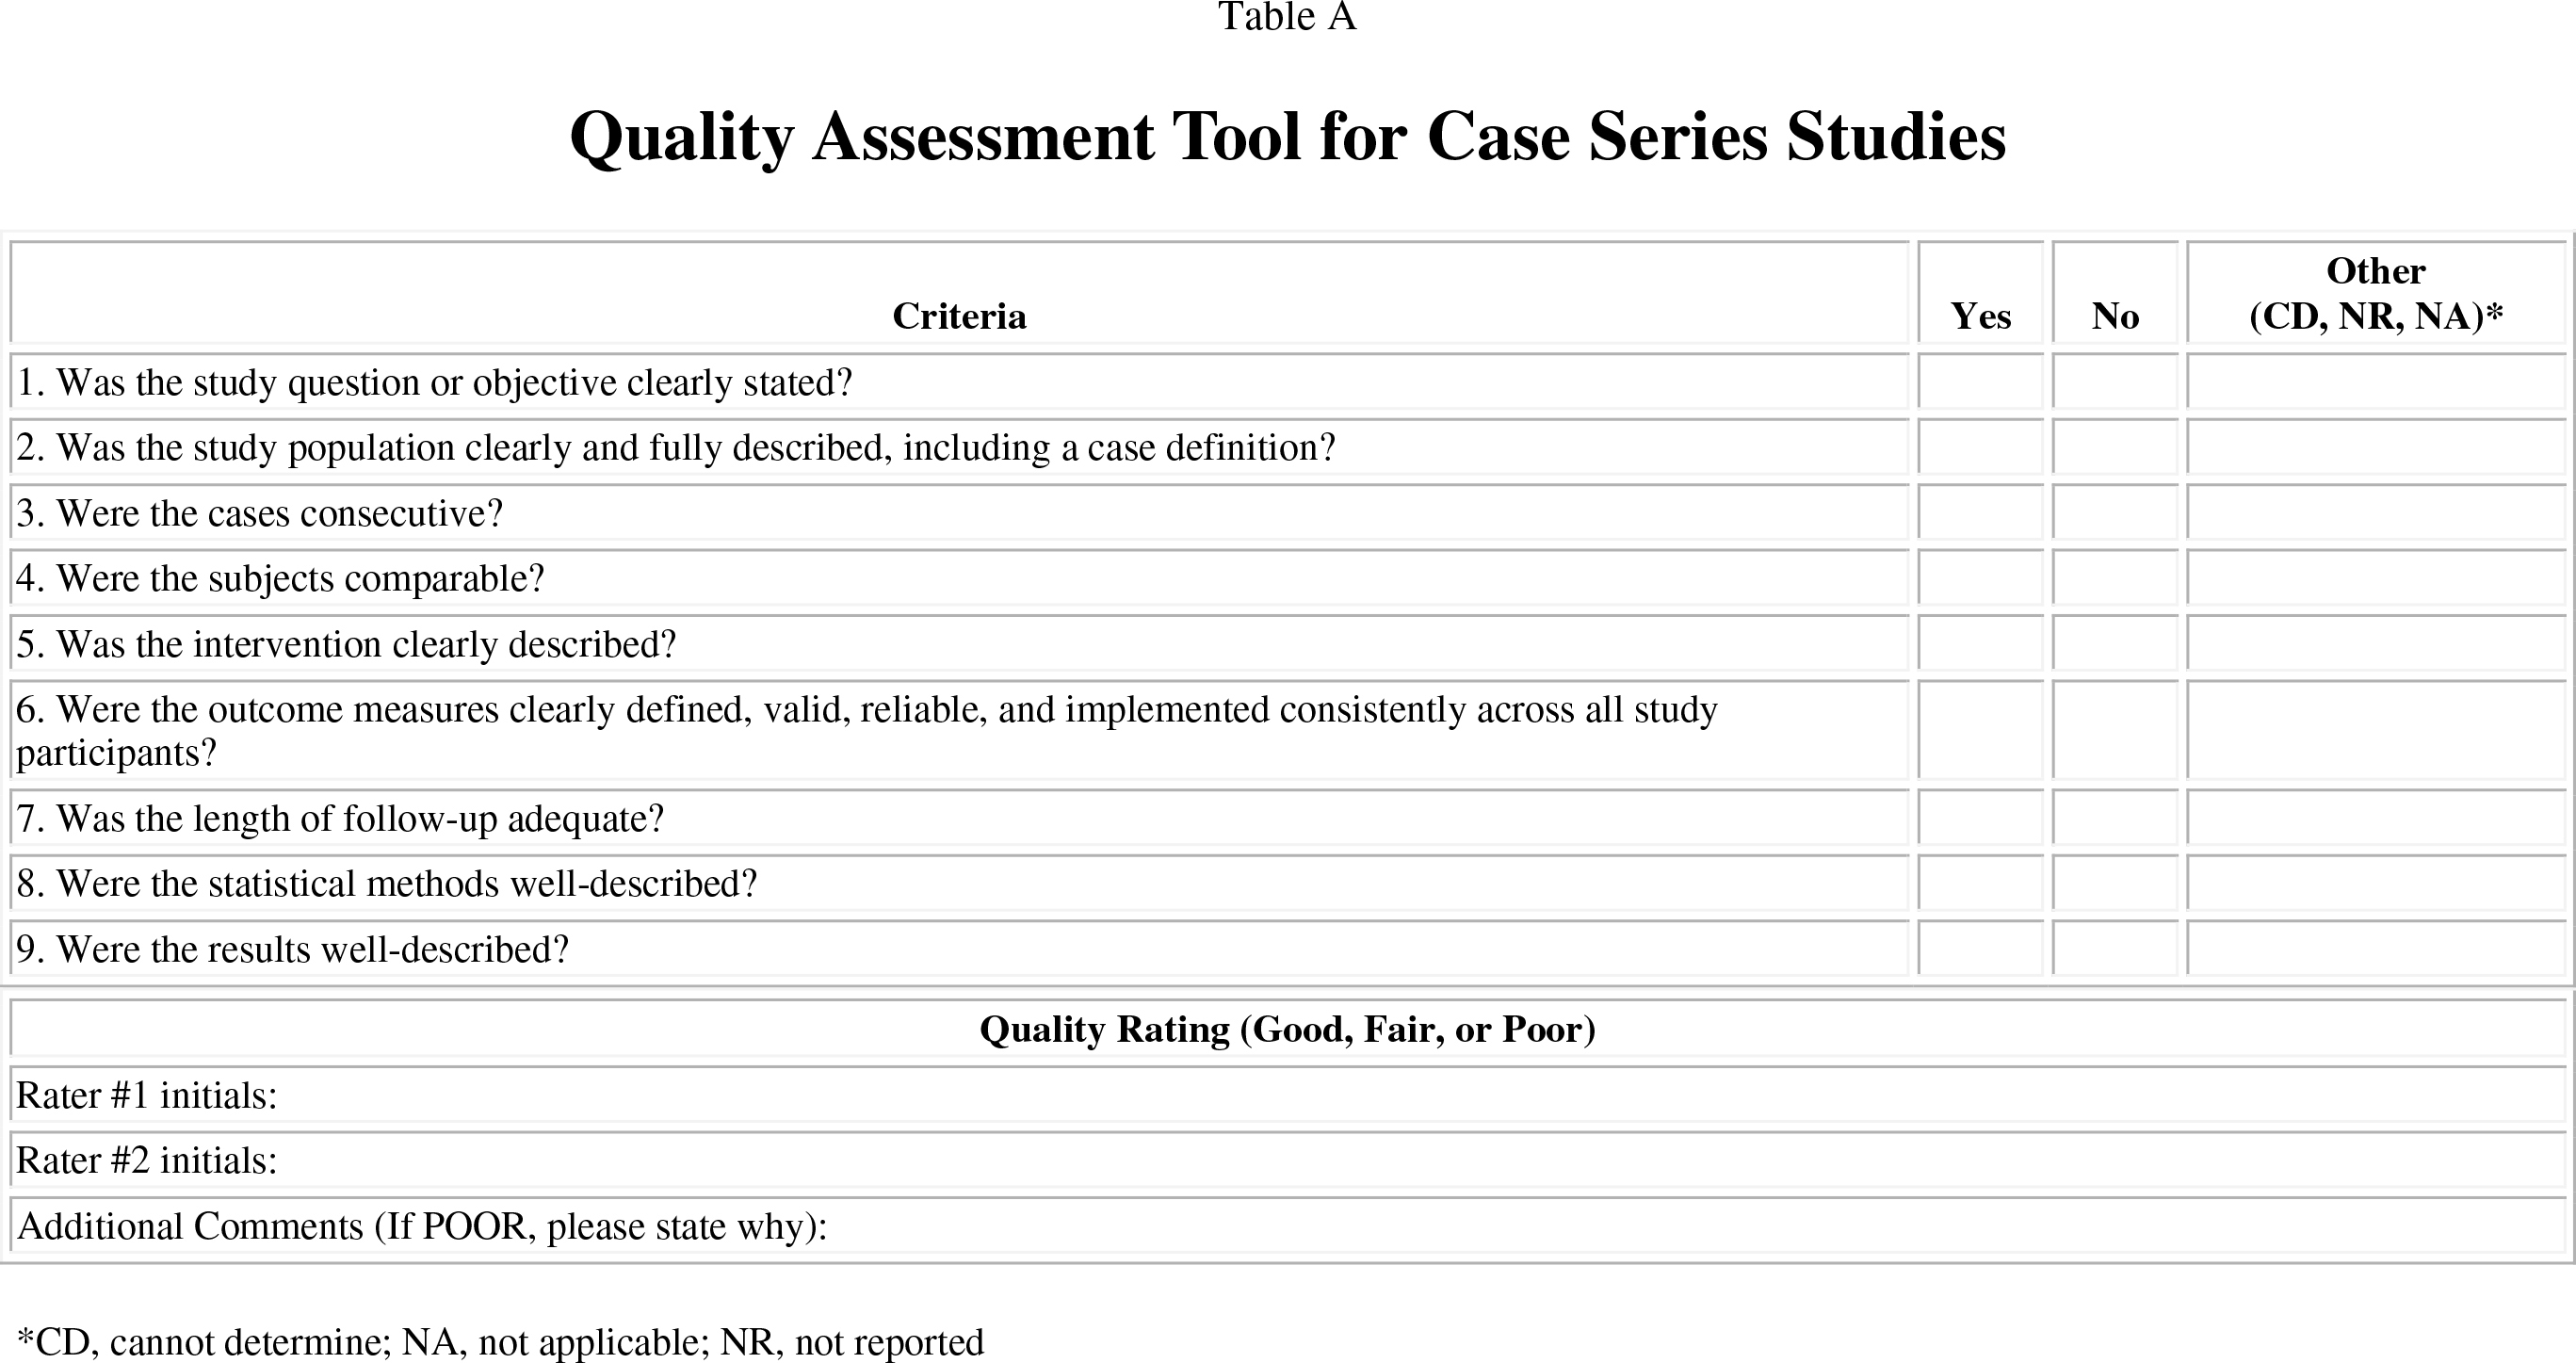 Quality Assessment Tool for Case Series Studies